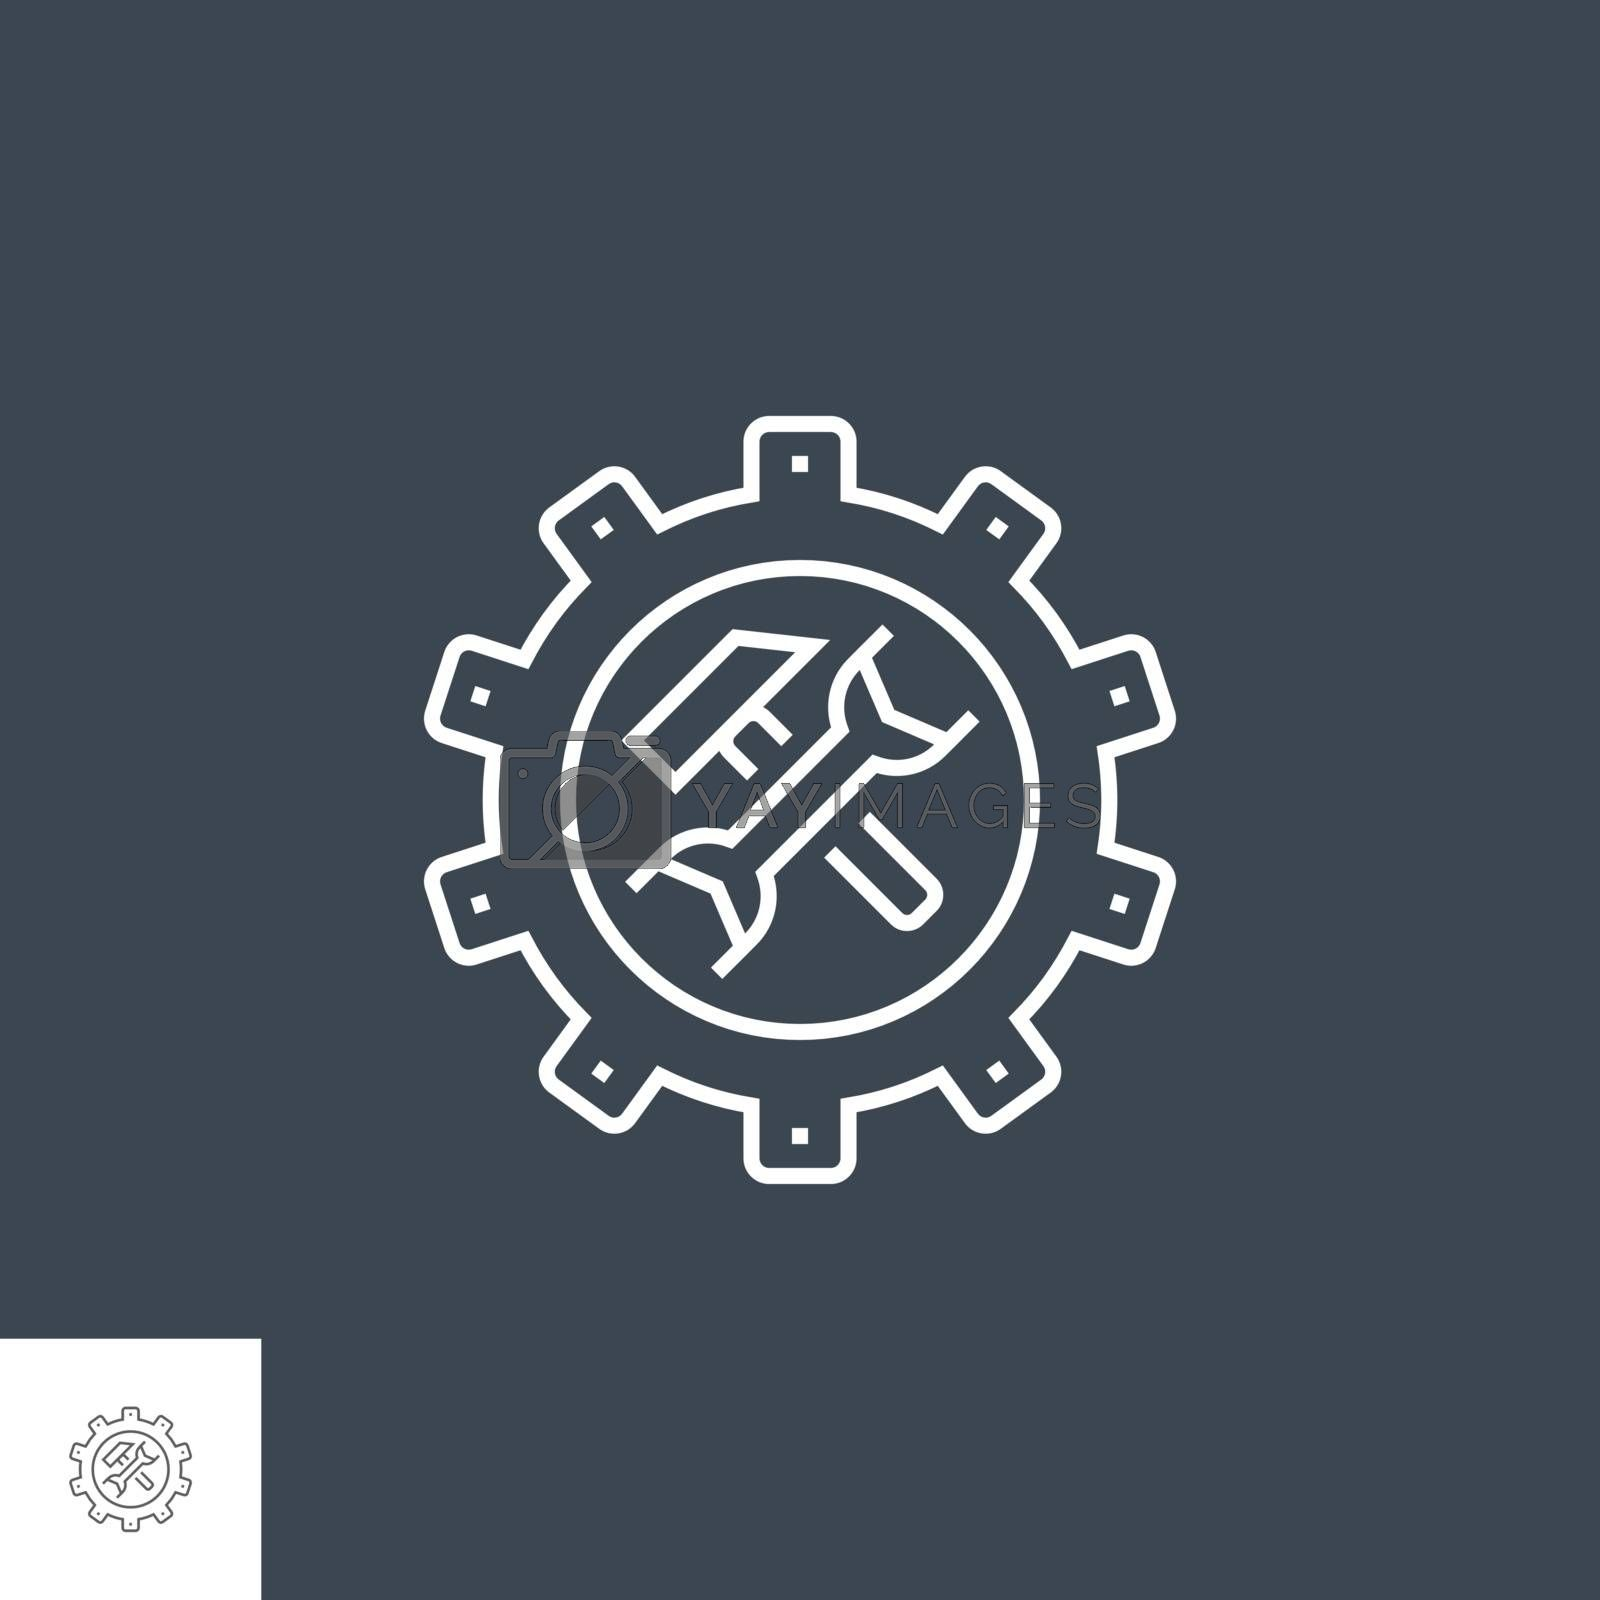 Technical Support Related Vector Thin Line Icon. Isolated on Black Background. Editable Stroke. Vector Illustration.